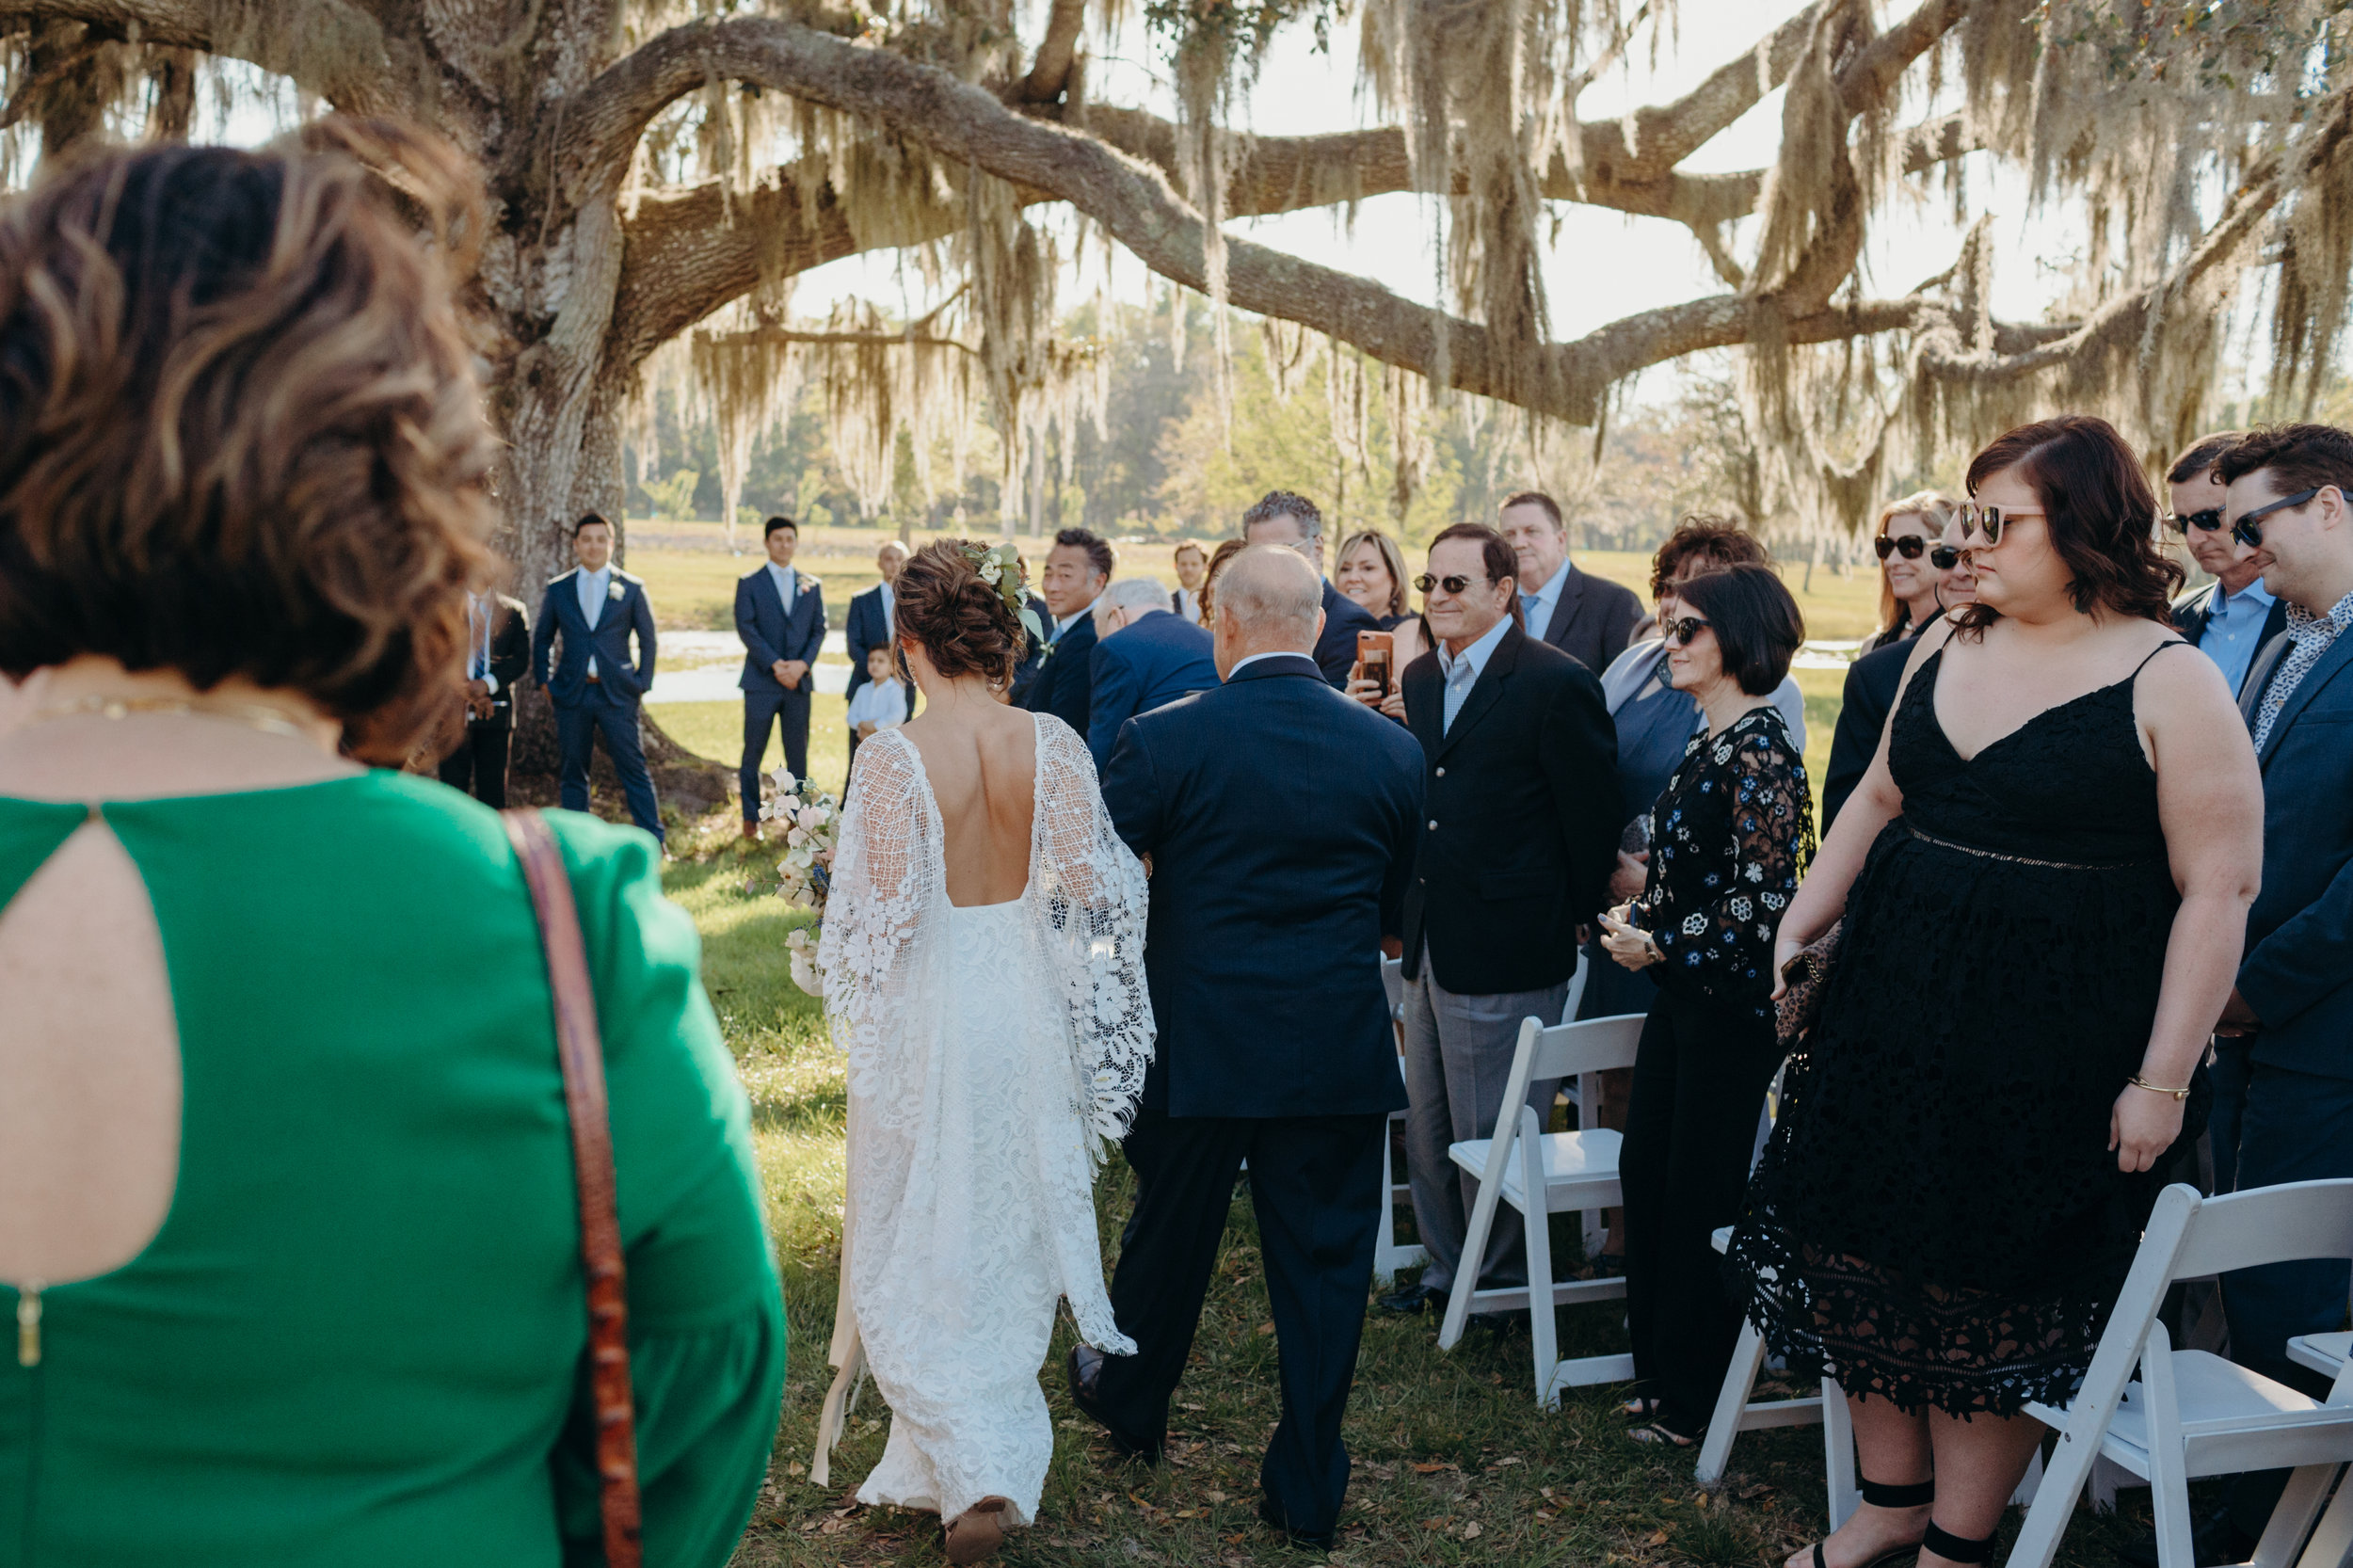 Ceremony | Wedding | Chris and Kristen | congaree and penn | Jacksonville florida| Documented by Vanessa Boy (163 of 178).jpg